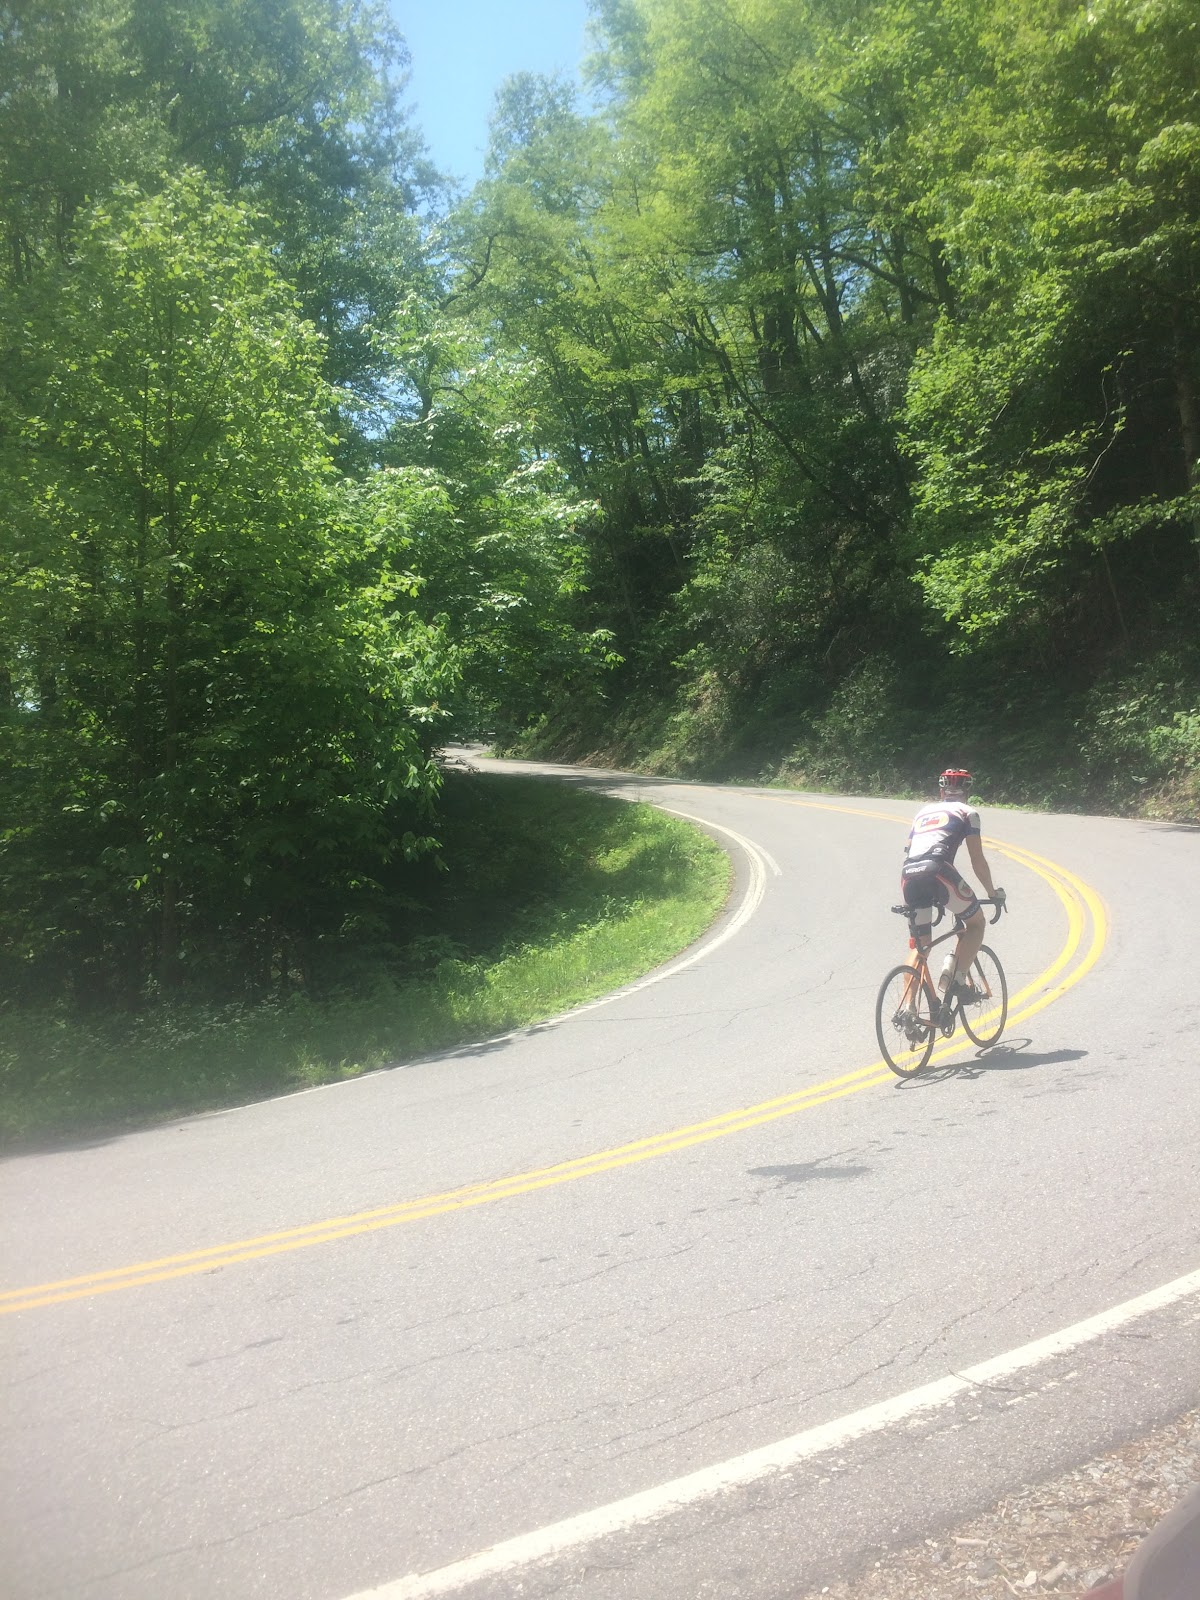 Climbing Mt. Mitchell by bike - cyclist on road surrounded by trees